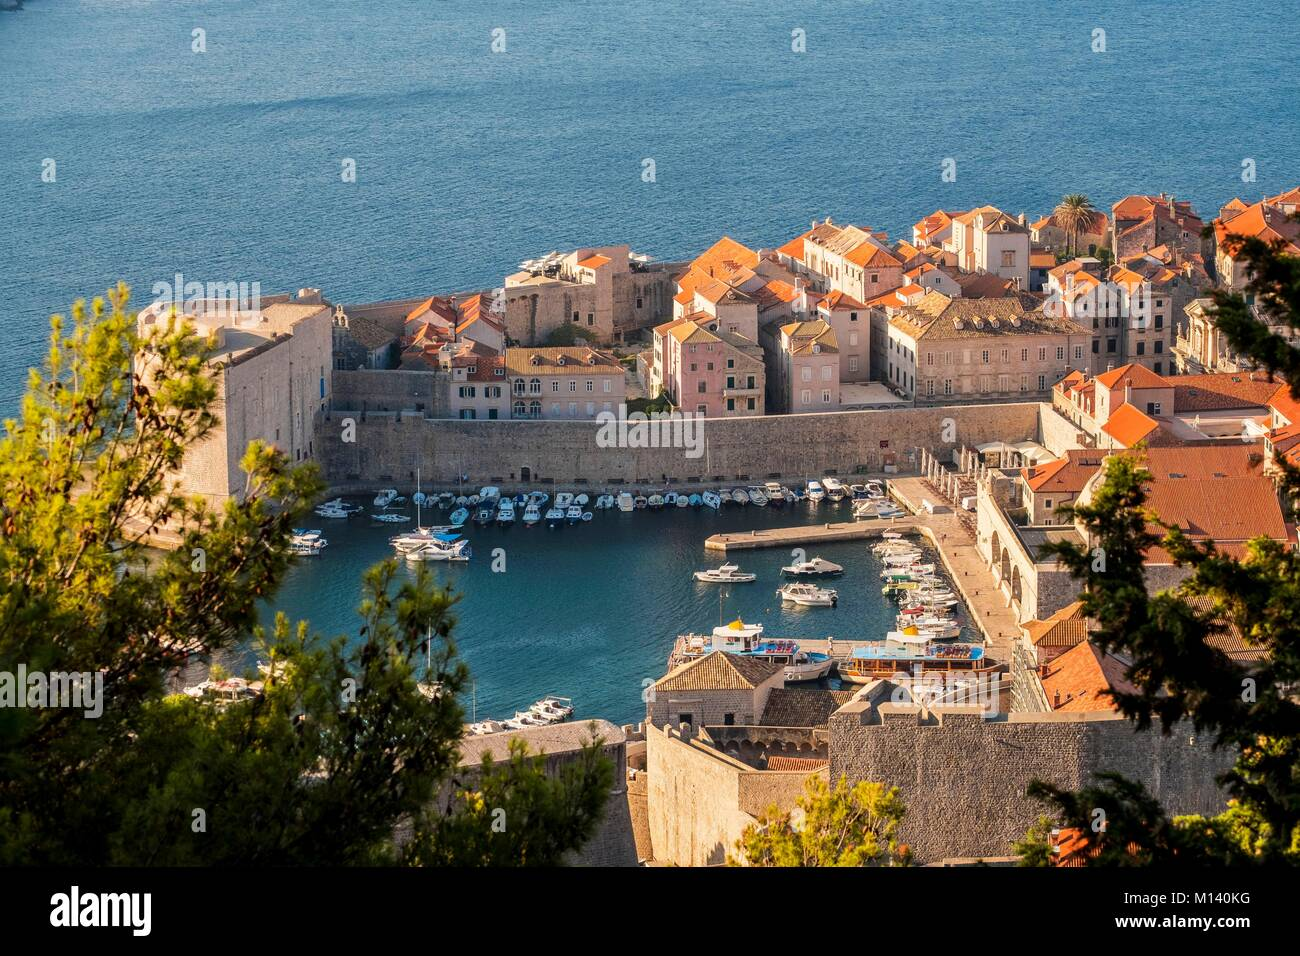 Croatia, Central Dalmatia, Dalmatian coast, Dubrovnik, Historic Centre listed as World Heritage by UNESCO, the Old - Stock Image